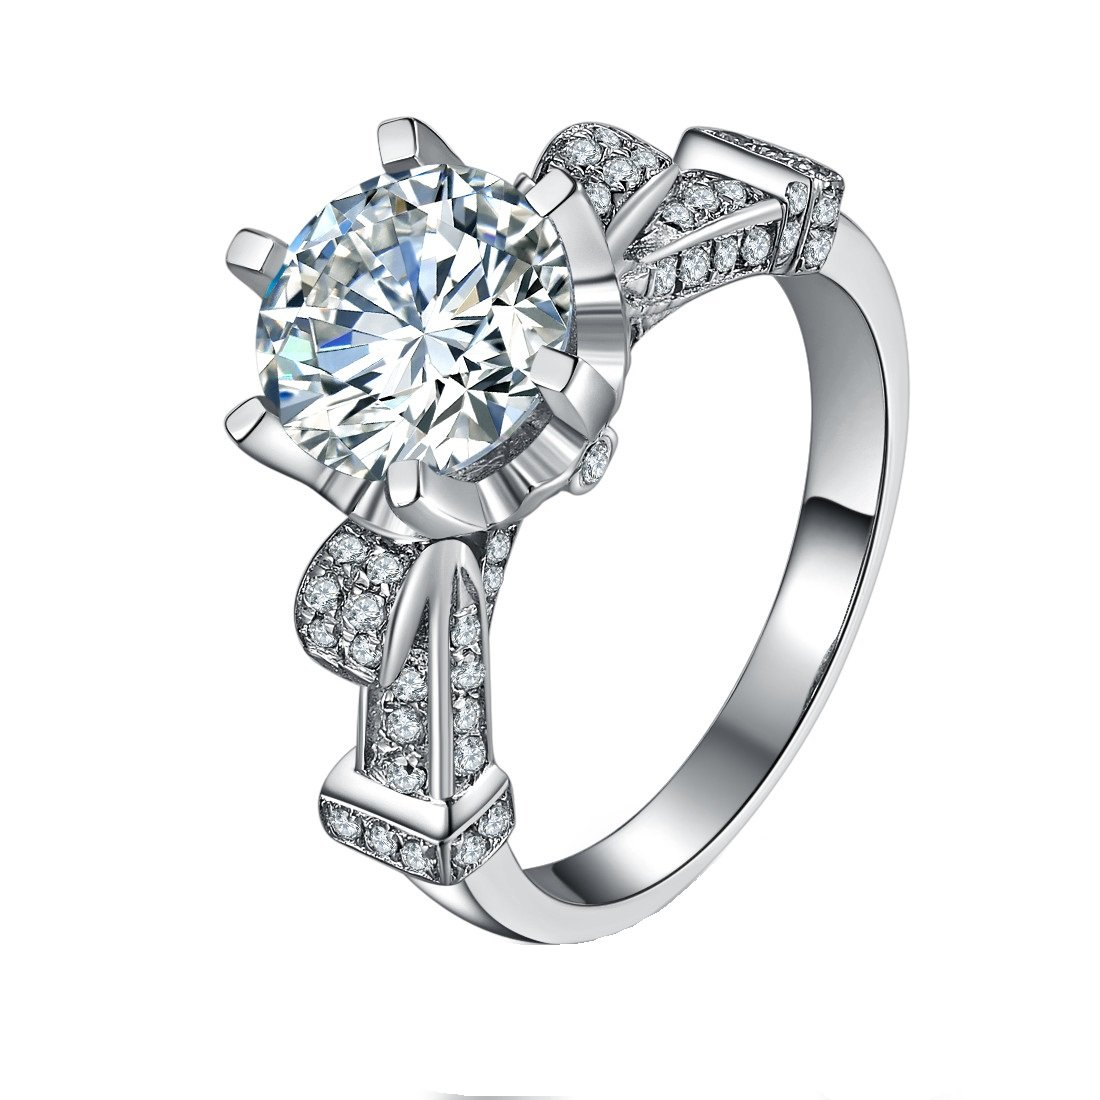 Sterling Silver Fabulous Ring 5CT NSCD Simulated Diamond Ring for Women Engagement 18K Gold Plated